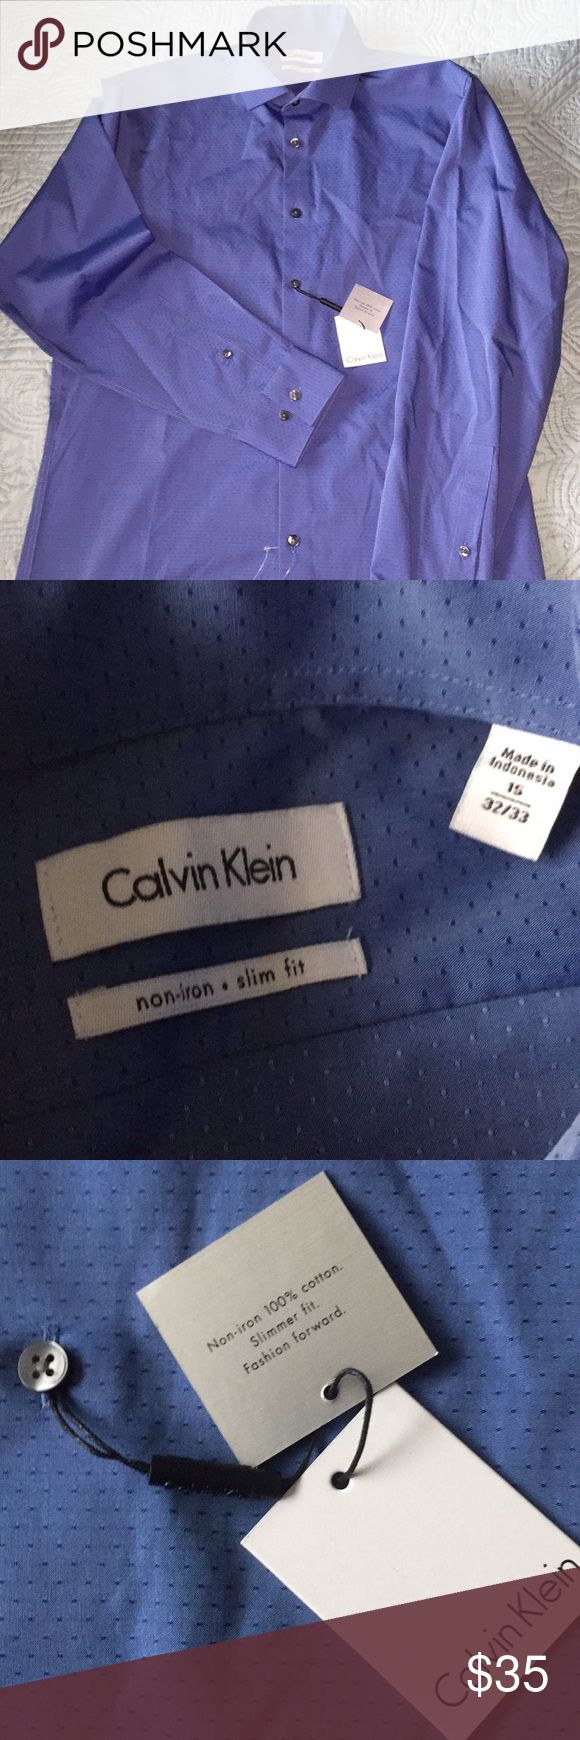 """CALVIN KLEIN slim fit dress shirt. Sz 15-32/33 NWT Non-iron cotton, slim fit men's shirt in Ballard Blue. Neck to bottom hem 28"""". (Any wrinkles are from the shopping bag- this is a non-iron shirt and launders or dry cleans beautifully) For husband, boyfriend, or high school grad, this is a great gift! Calvin Klein Shirts Dress Shirts"""